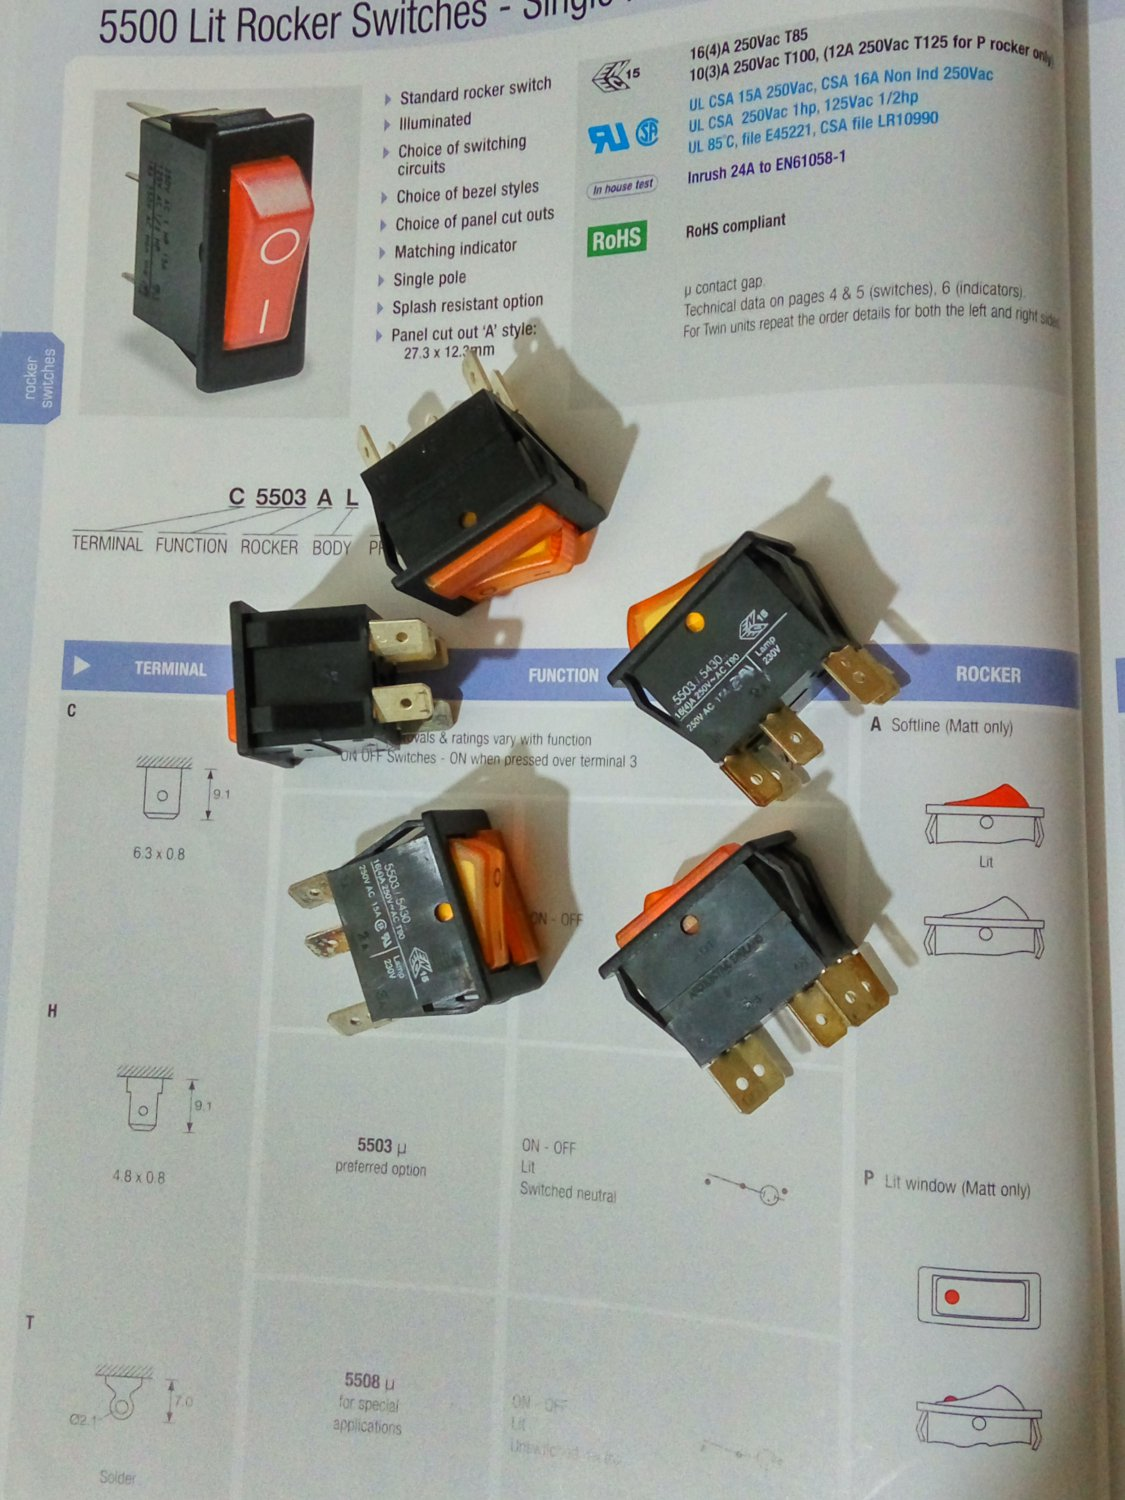 Arcolectric Lit Rocker Switch Single Pole 16A 250Vac A Switch and An Ind. Light Amber (Lot of 5 pcs)